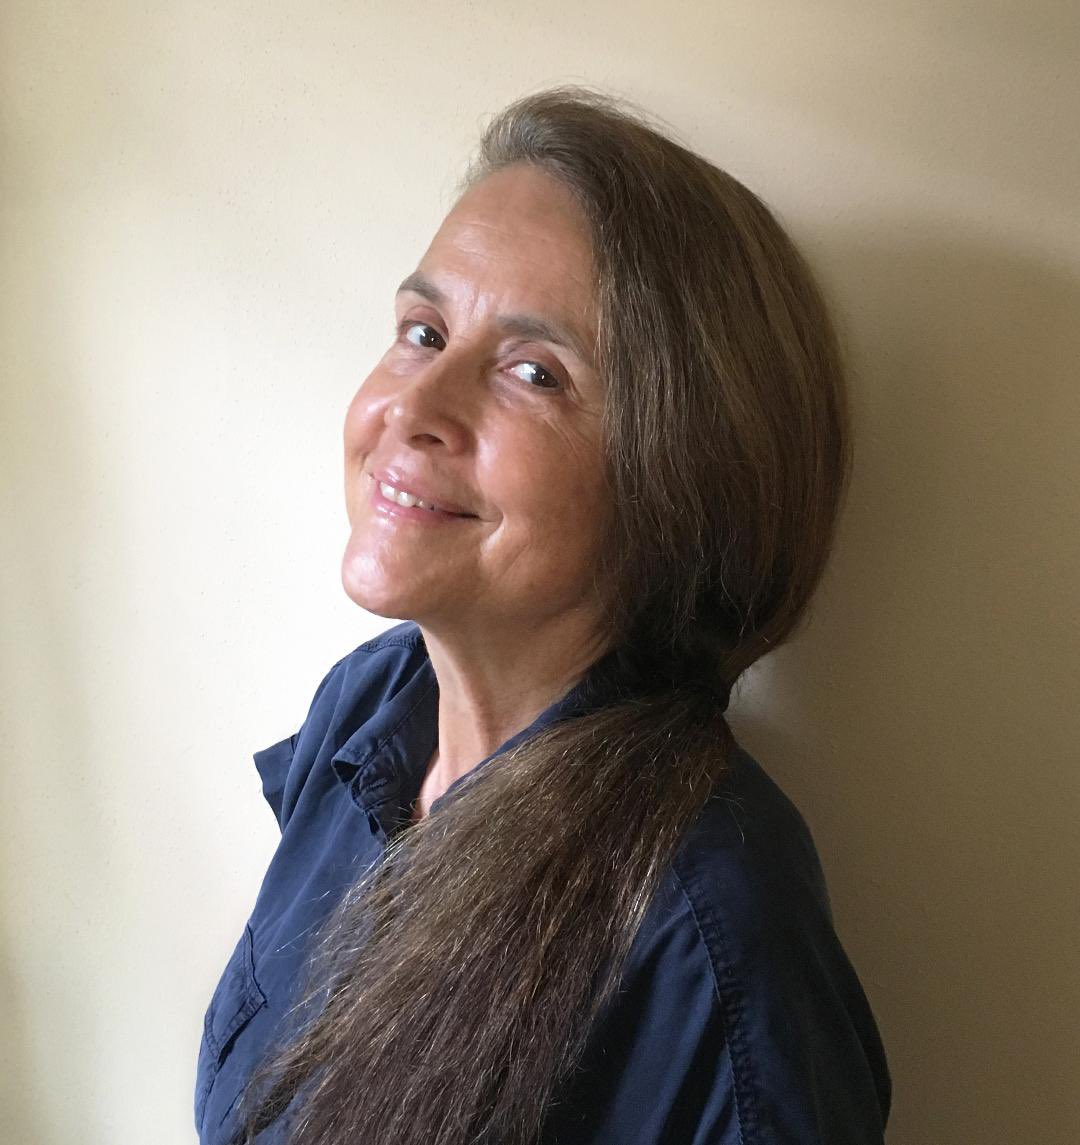 Zeina Hashem Beck On Twitter The Judge For The Arabic Language Poem Category For Adults Is Asmaaazaizeh She S A Palestinian Poet Essayist Cultural Manager She S Published 3 Collections Most Recently Don T